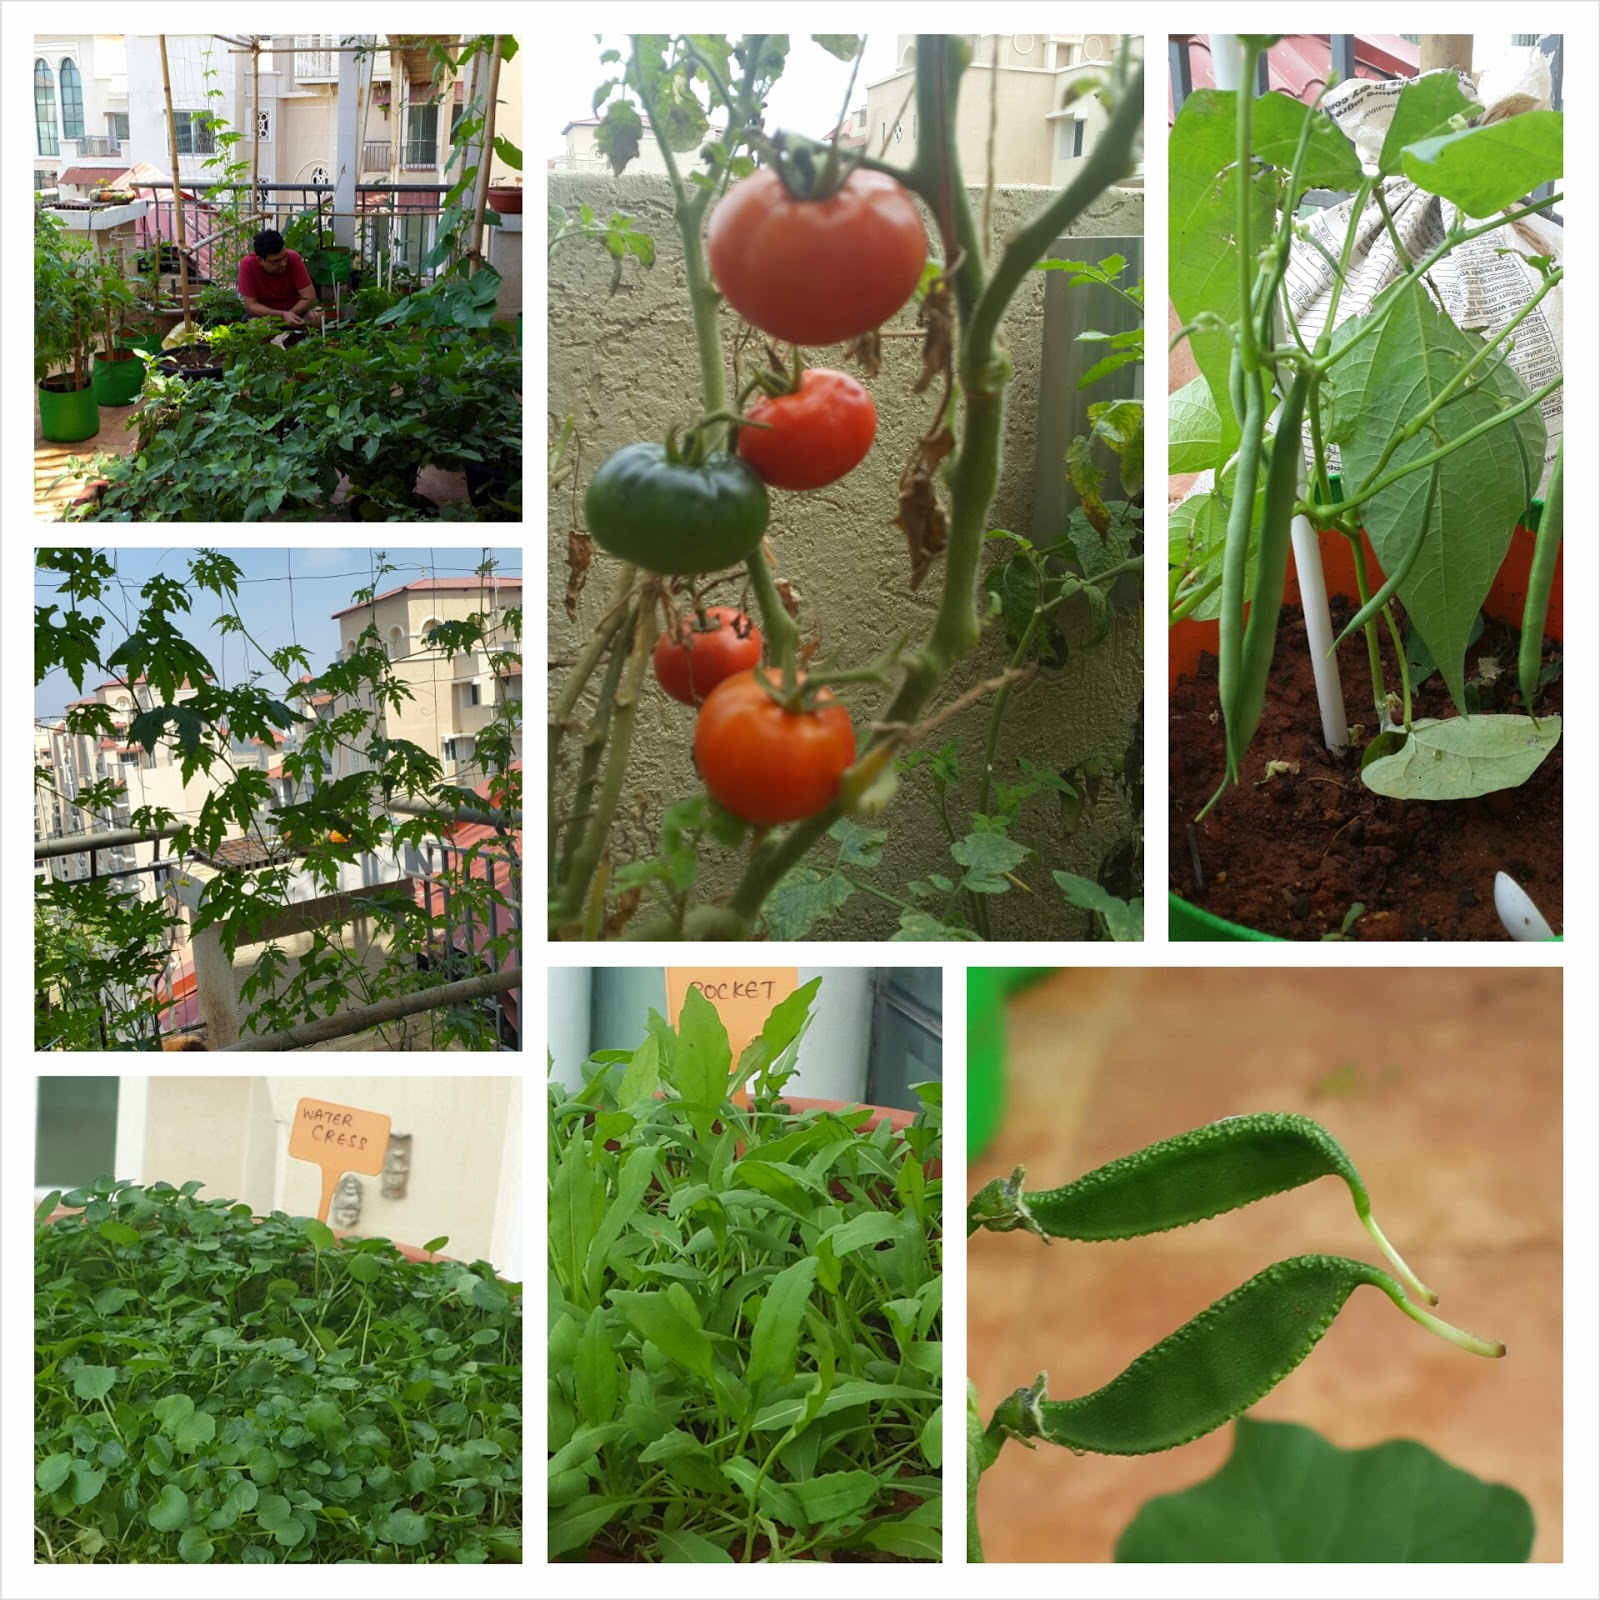 Preeti Shenoys blog On starting an organic terrace garden